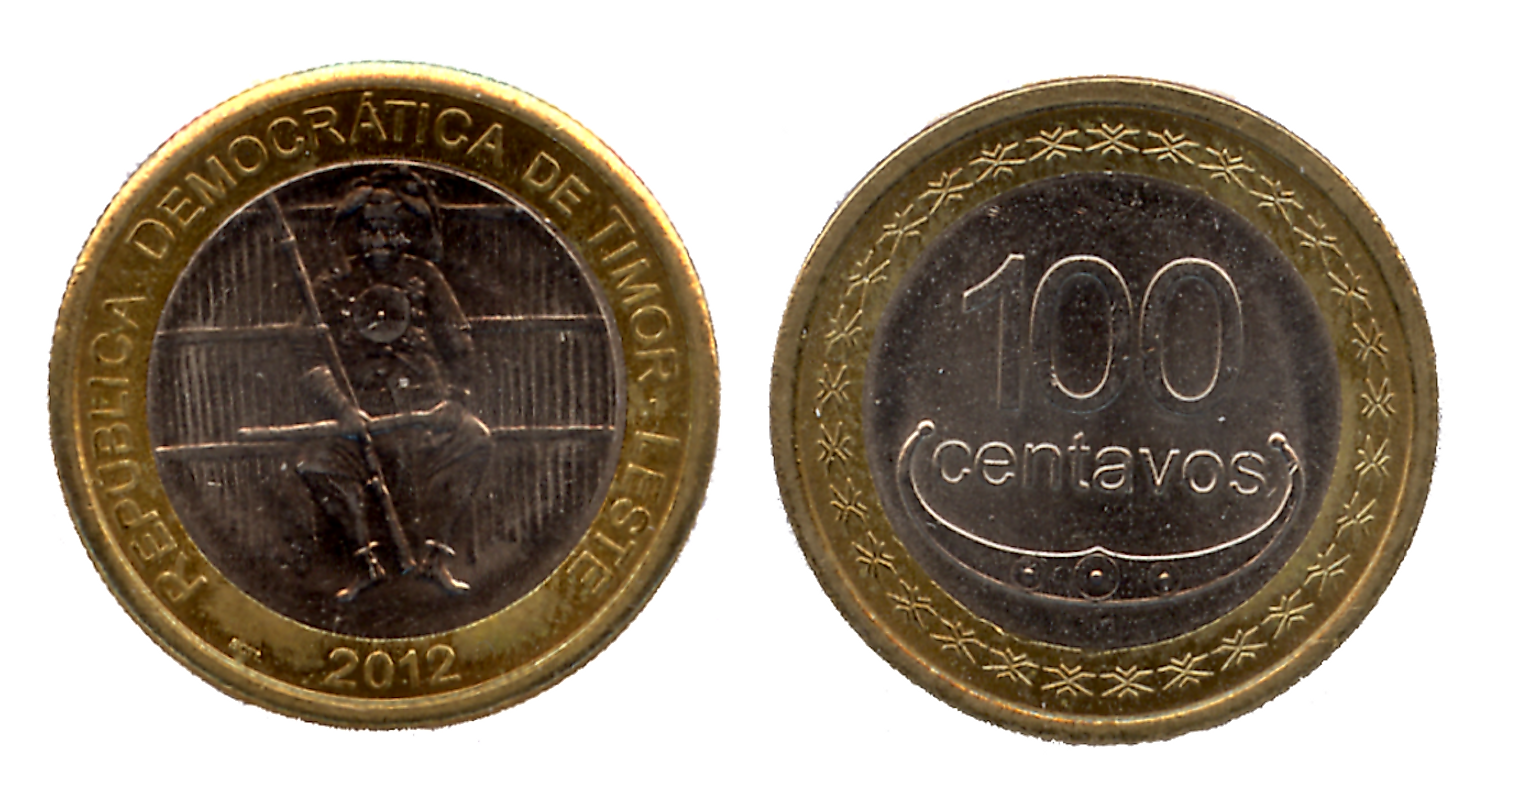 The US Dollar is used a the currency of Timor-Leste.